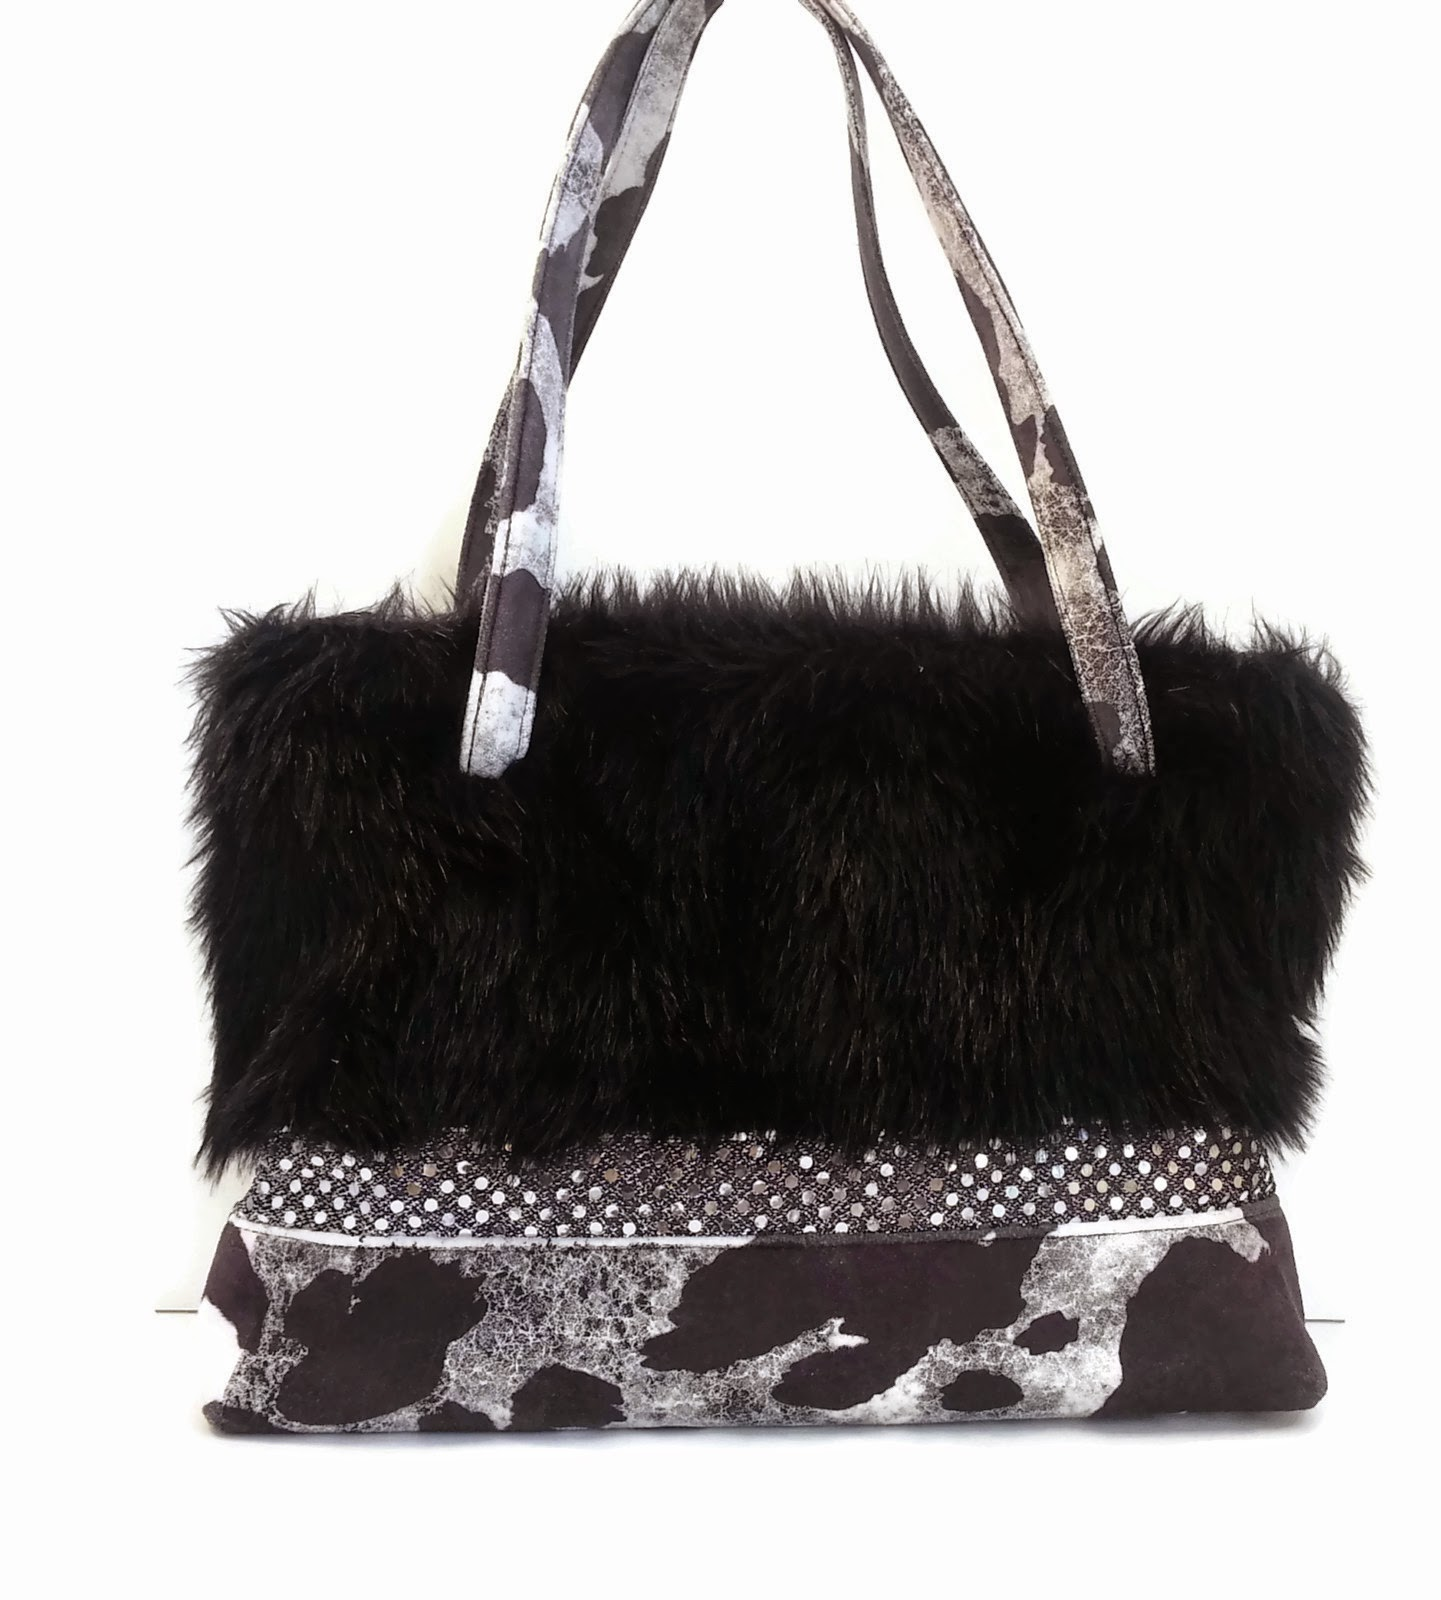 Large Faux Fur and Sequin Zipper Tote in My Faux Fur Frenzy Shop